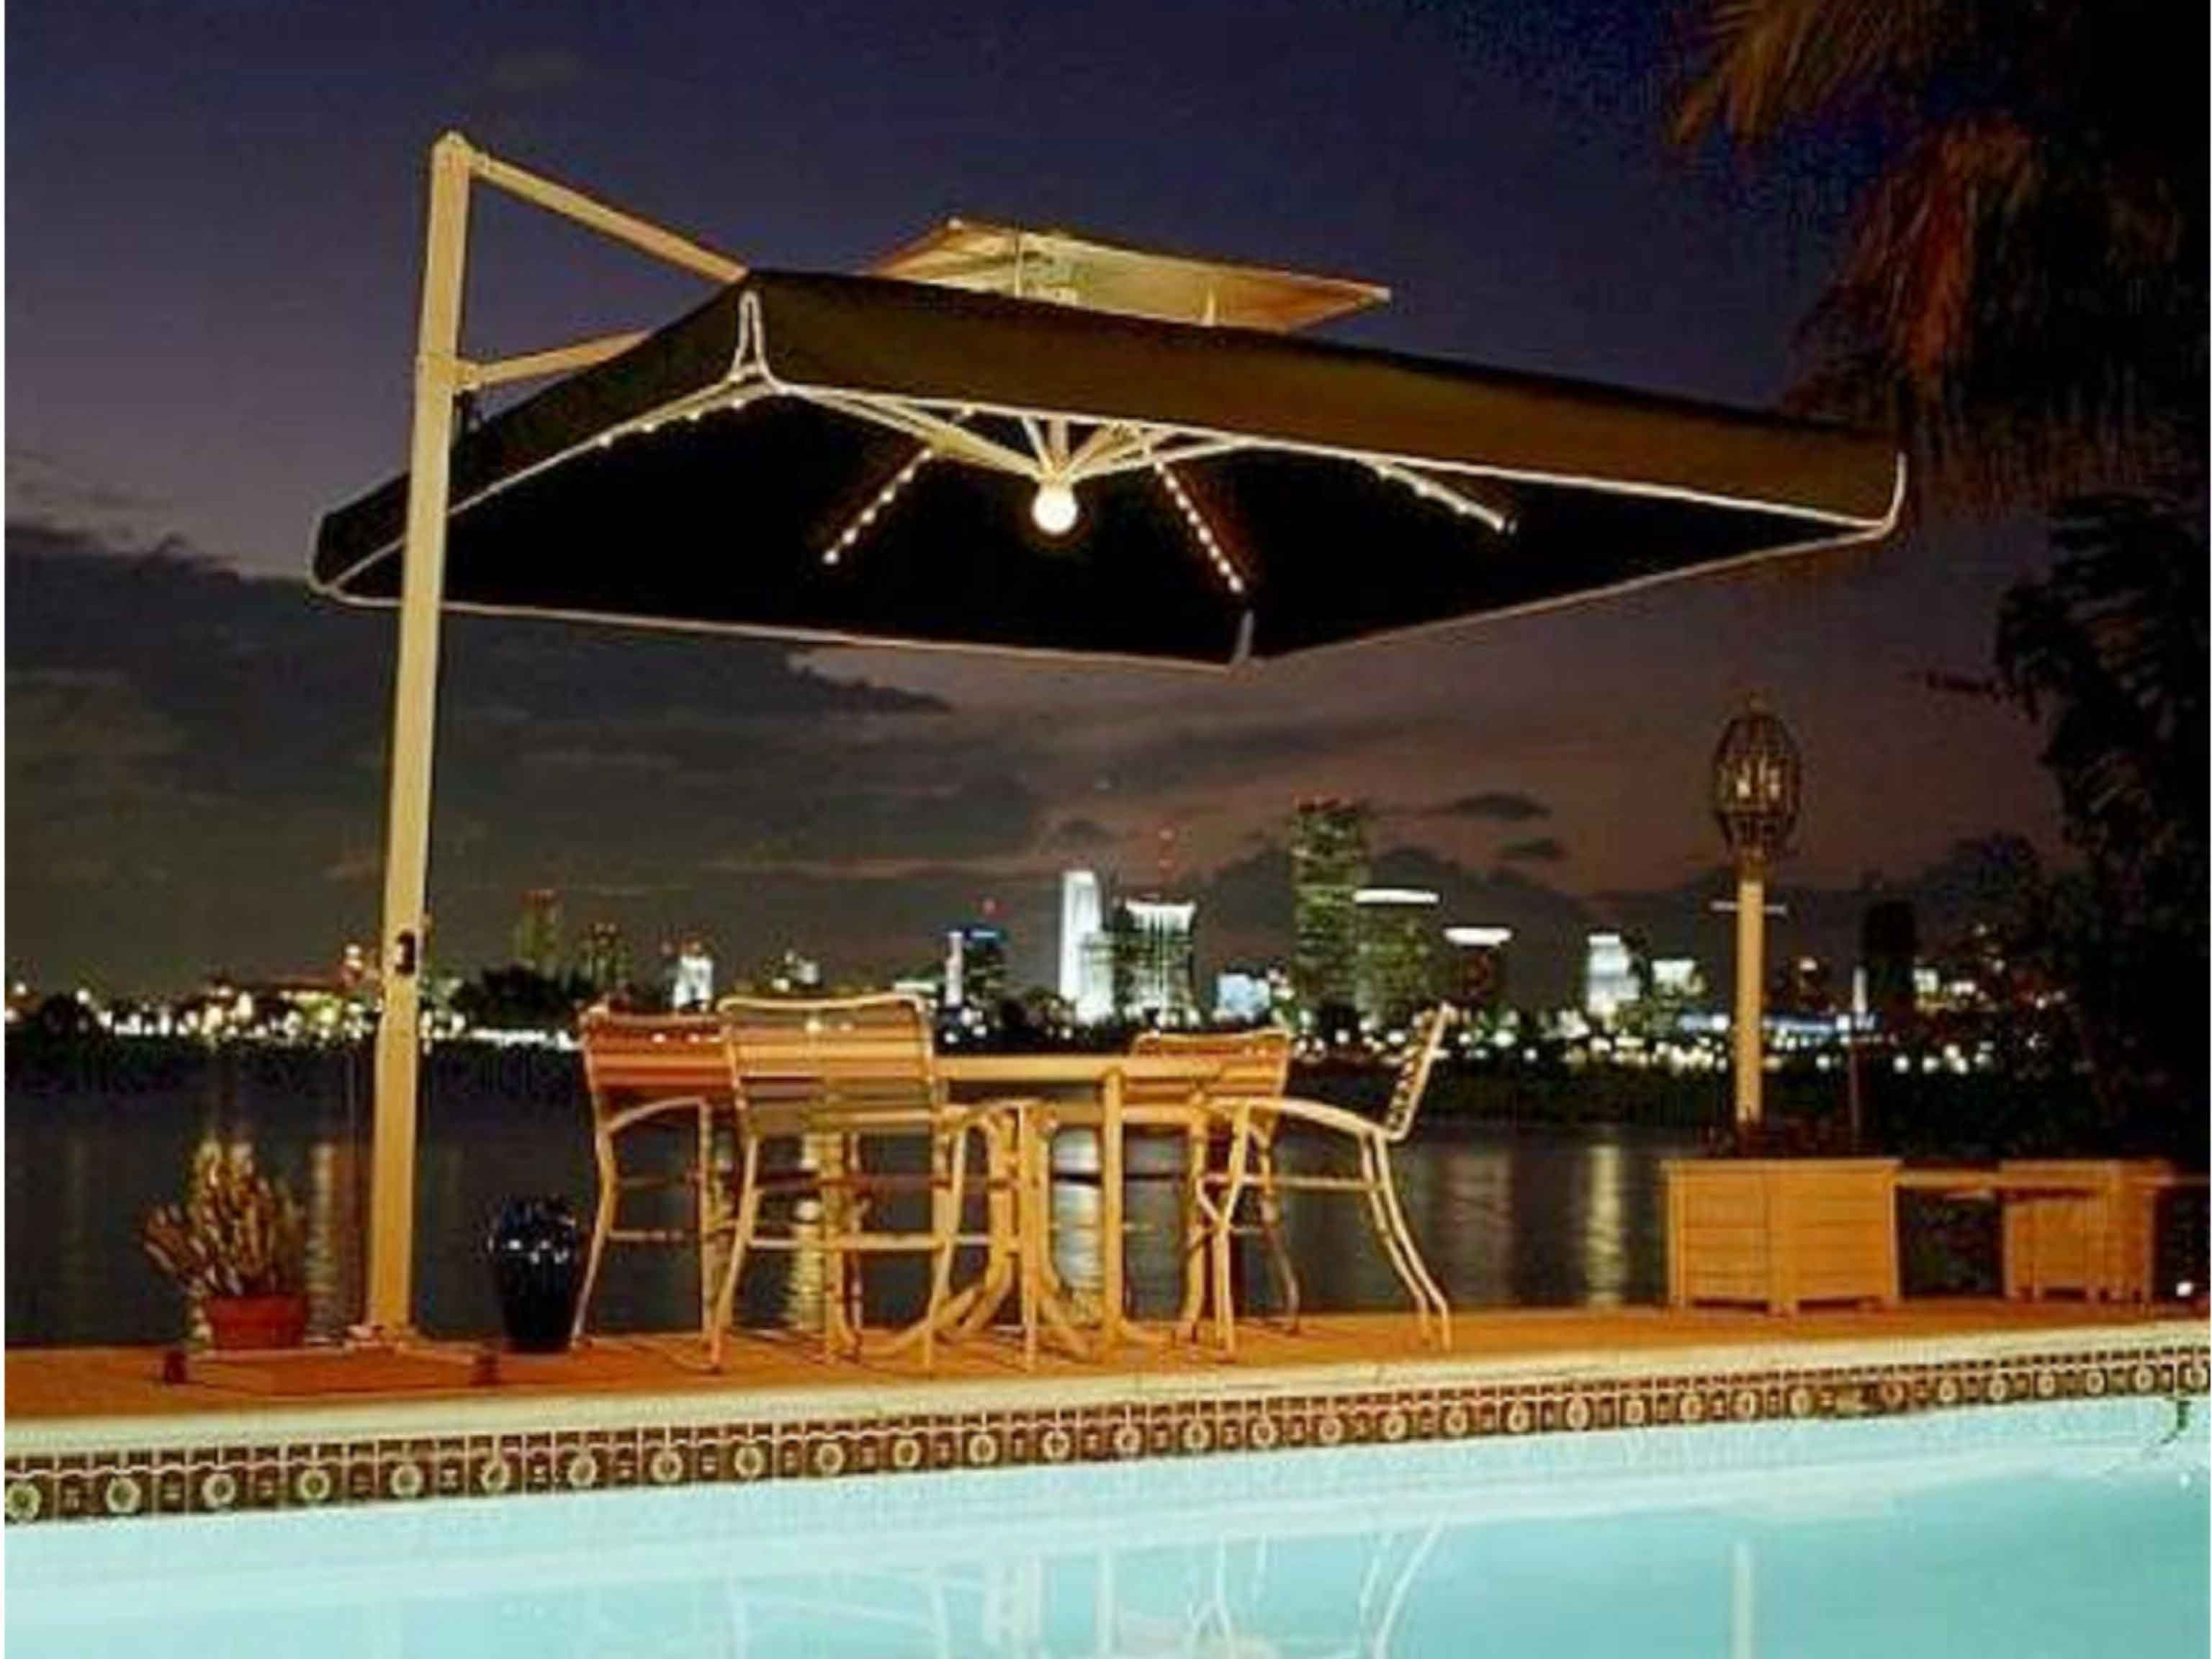 Best Patio Umbrella Inspirational Sunbrella Umbrella With Solar Pertaining To Most Recent Sunbrella Patio Umbrellas With Solar Lights (Gallery 4 of 20)